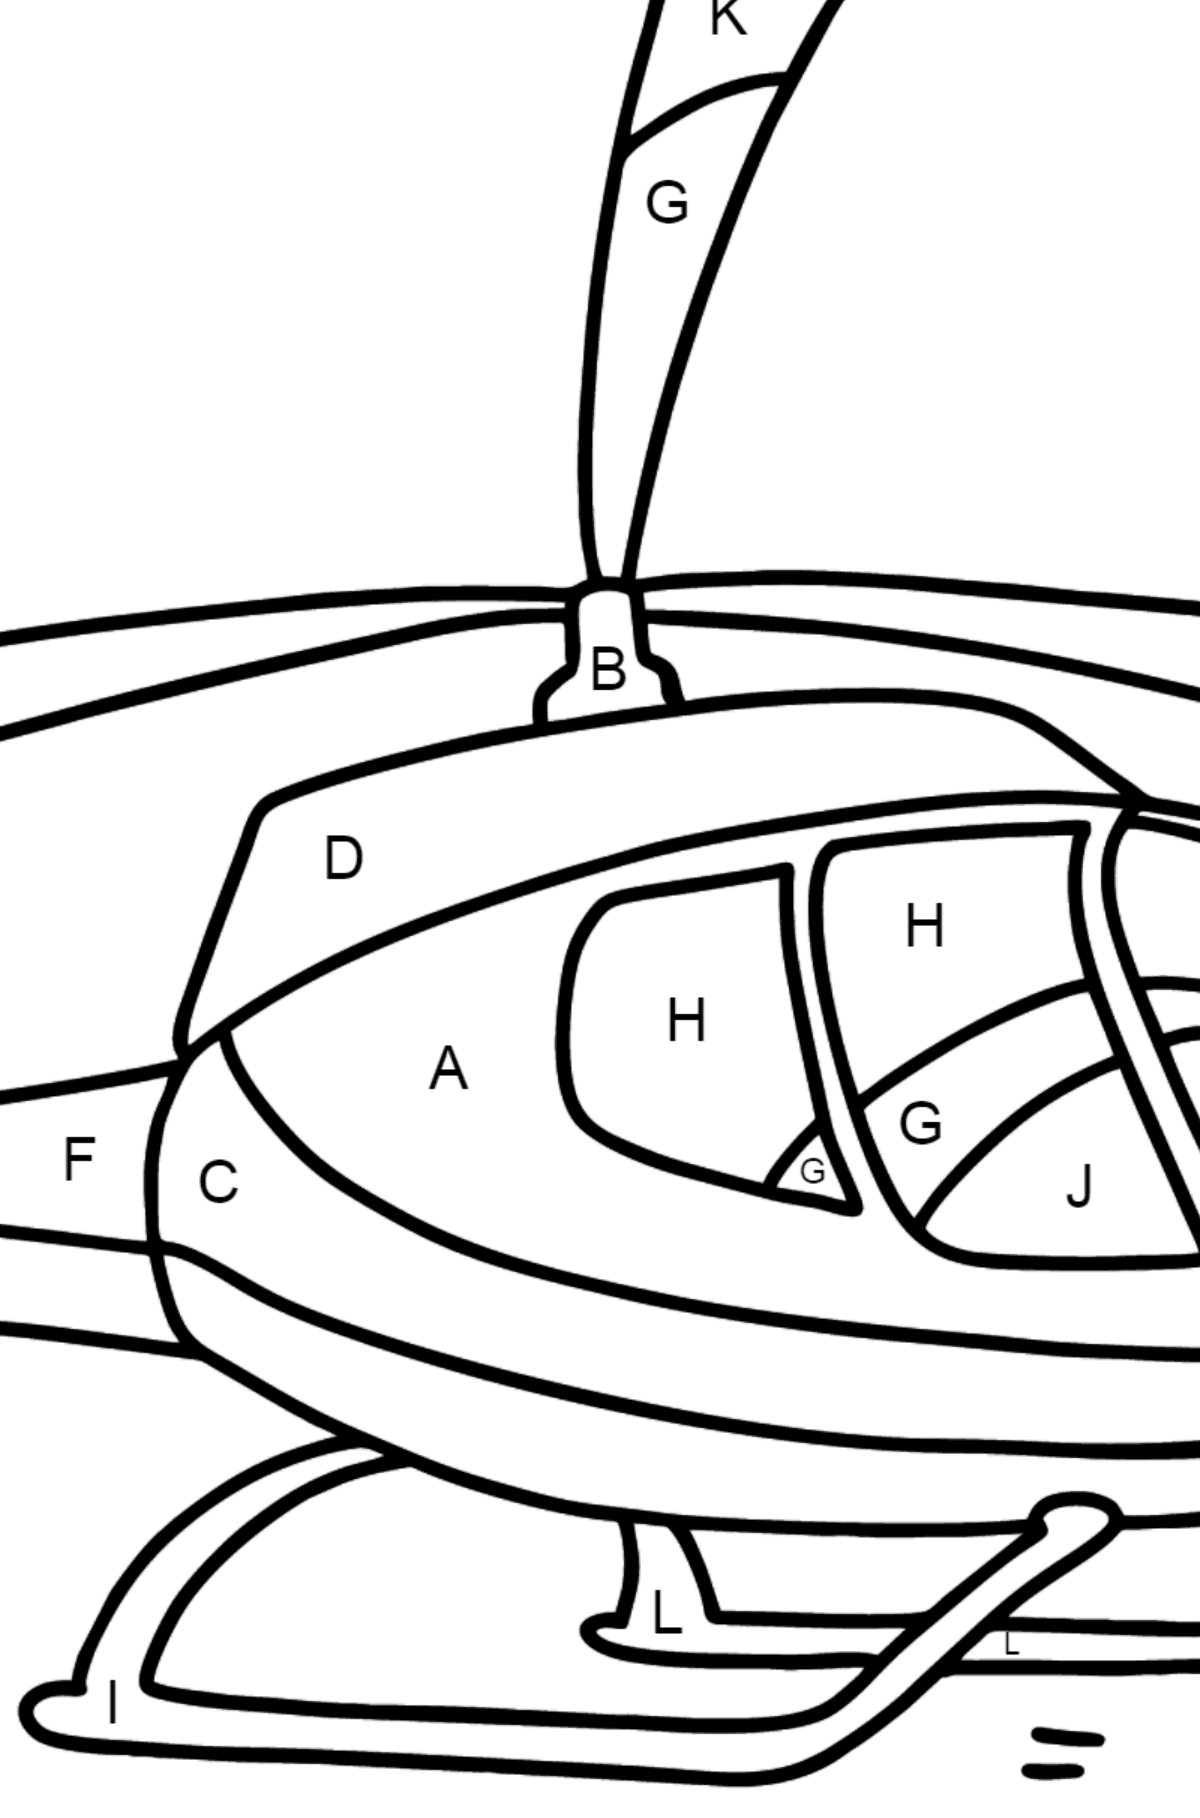 Beautiful Helicopter coloring page - Coloring by Letters for Kids